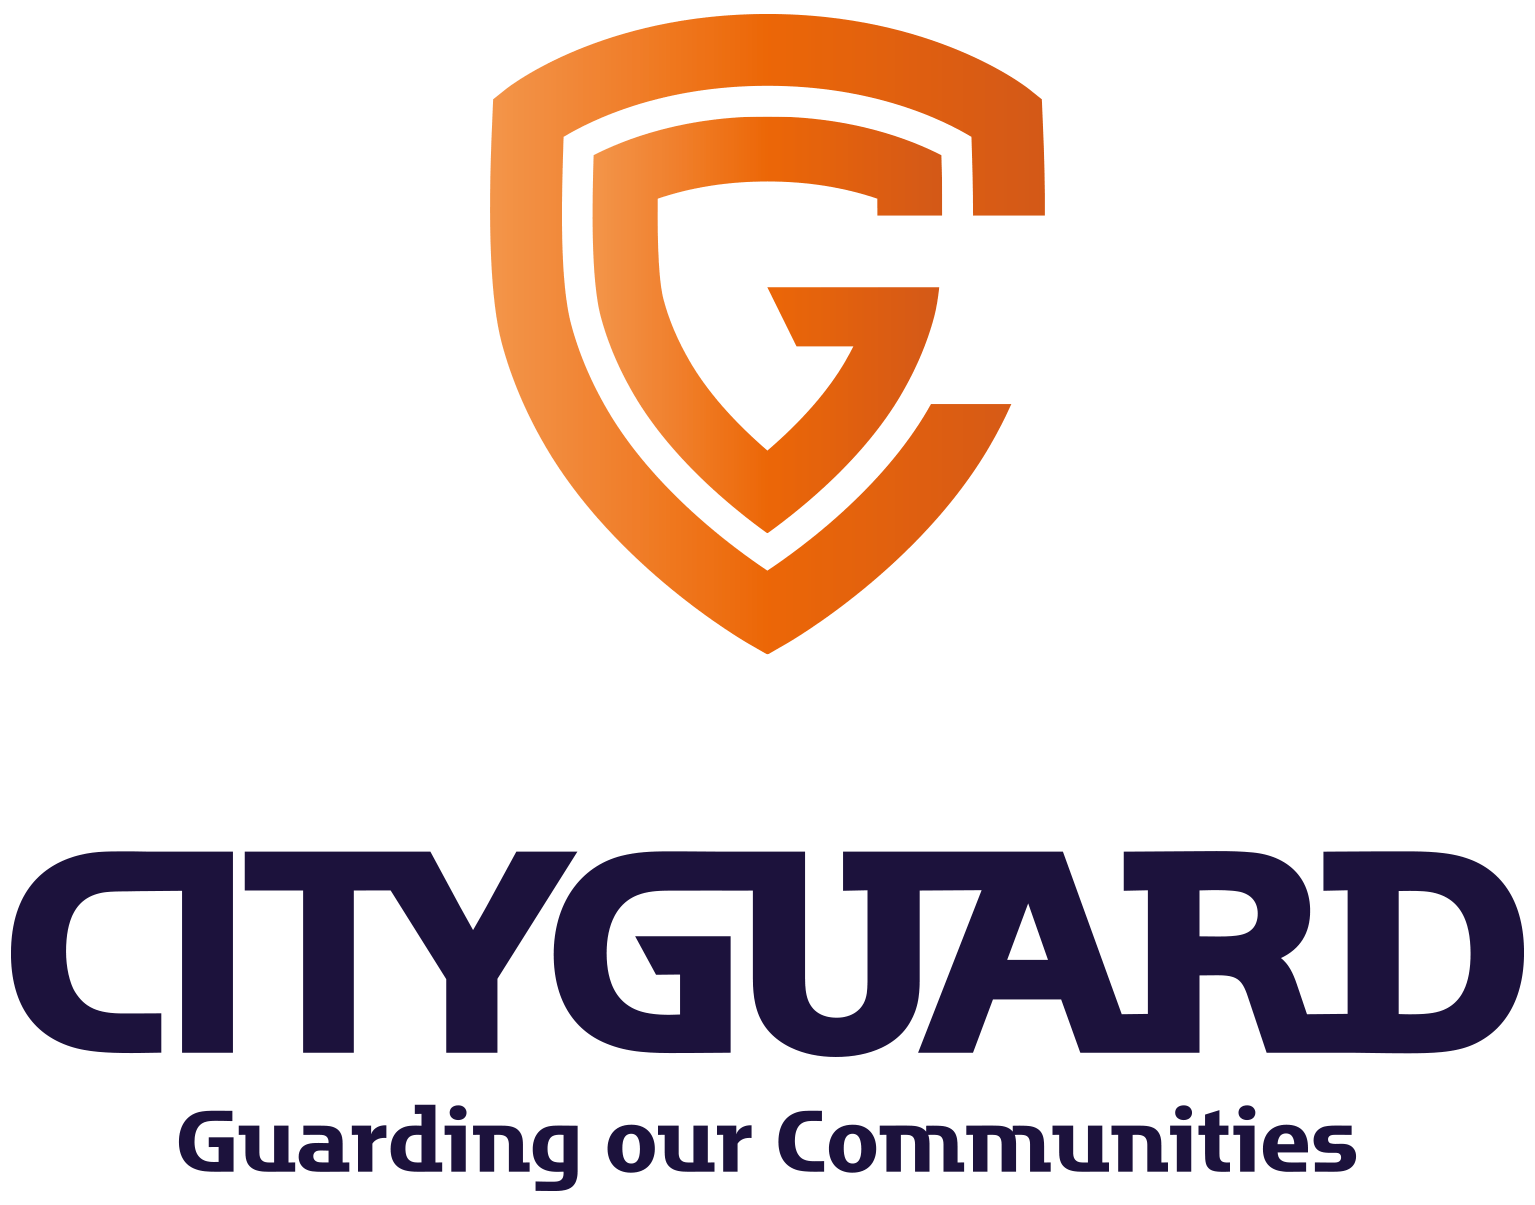 Cityguard Officers